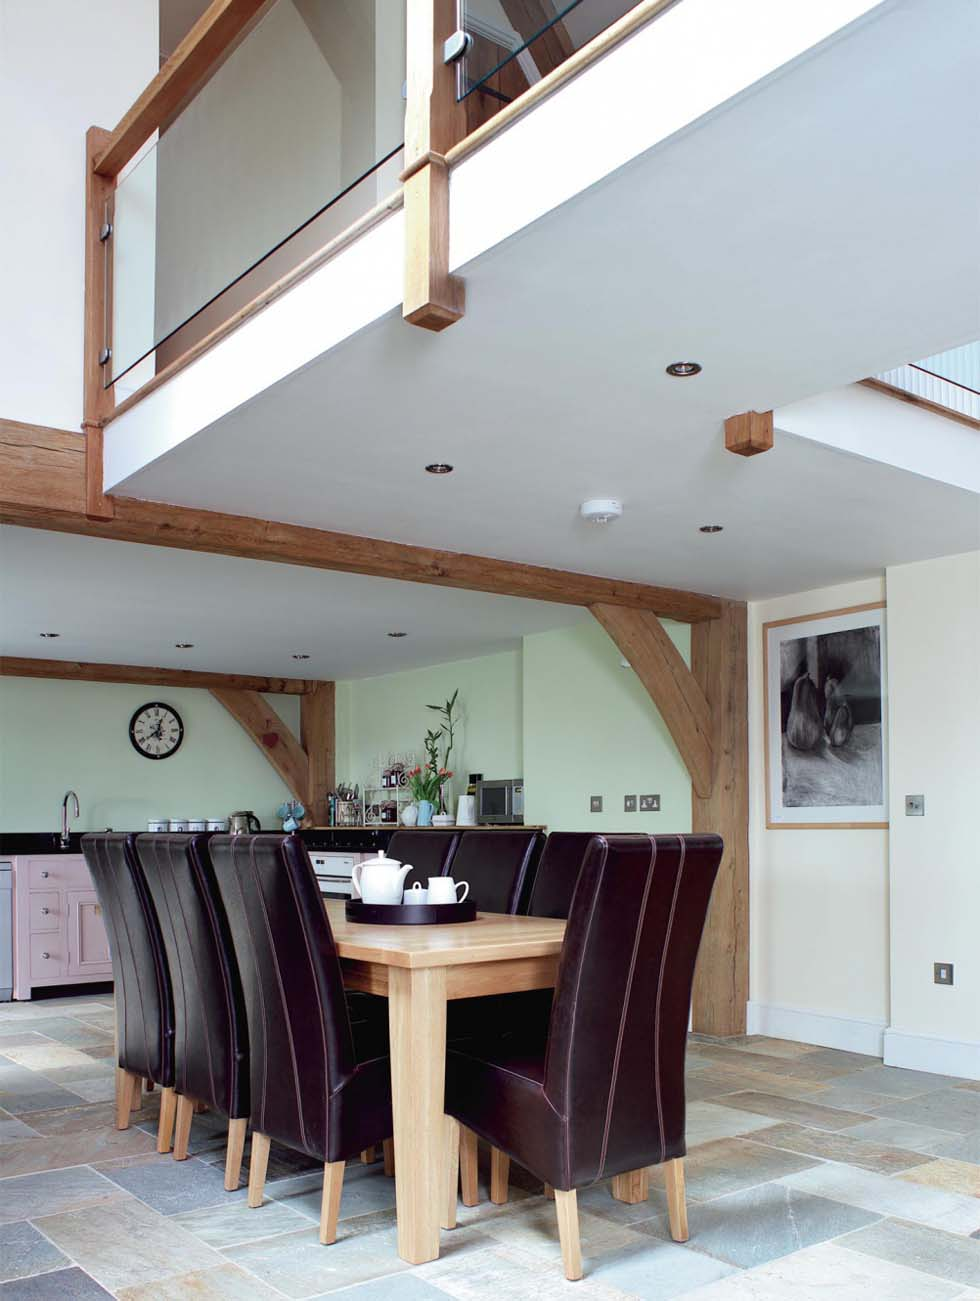 The dining area overlooked by the galleried landing